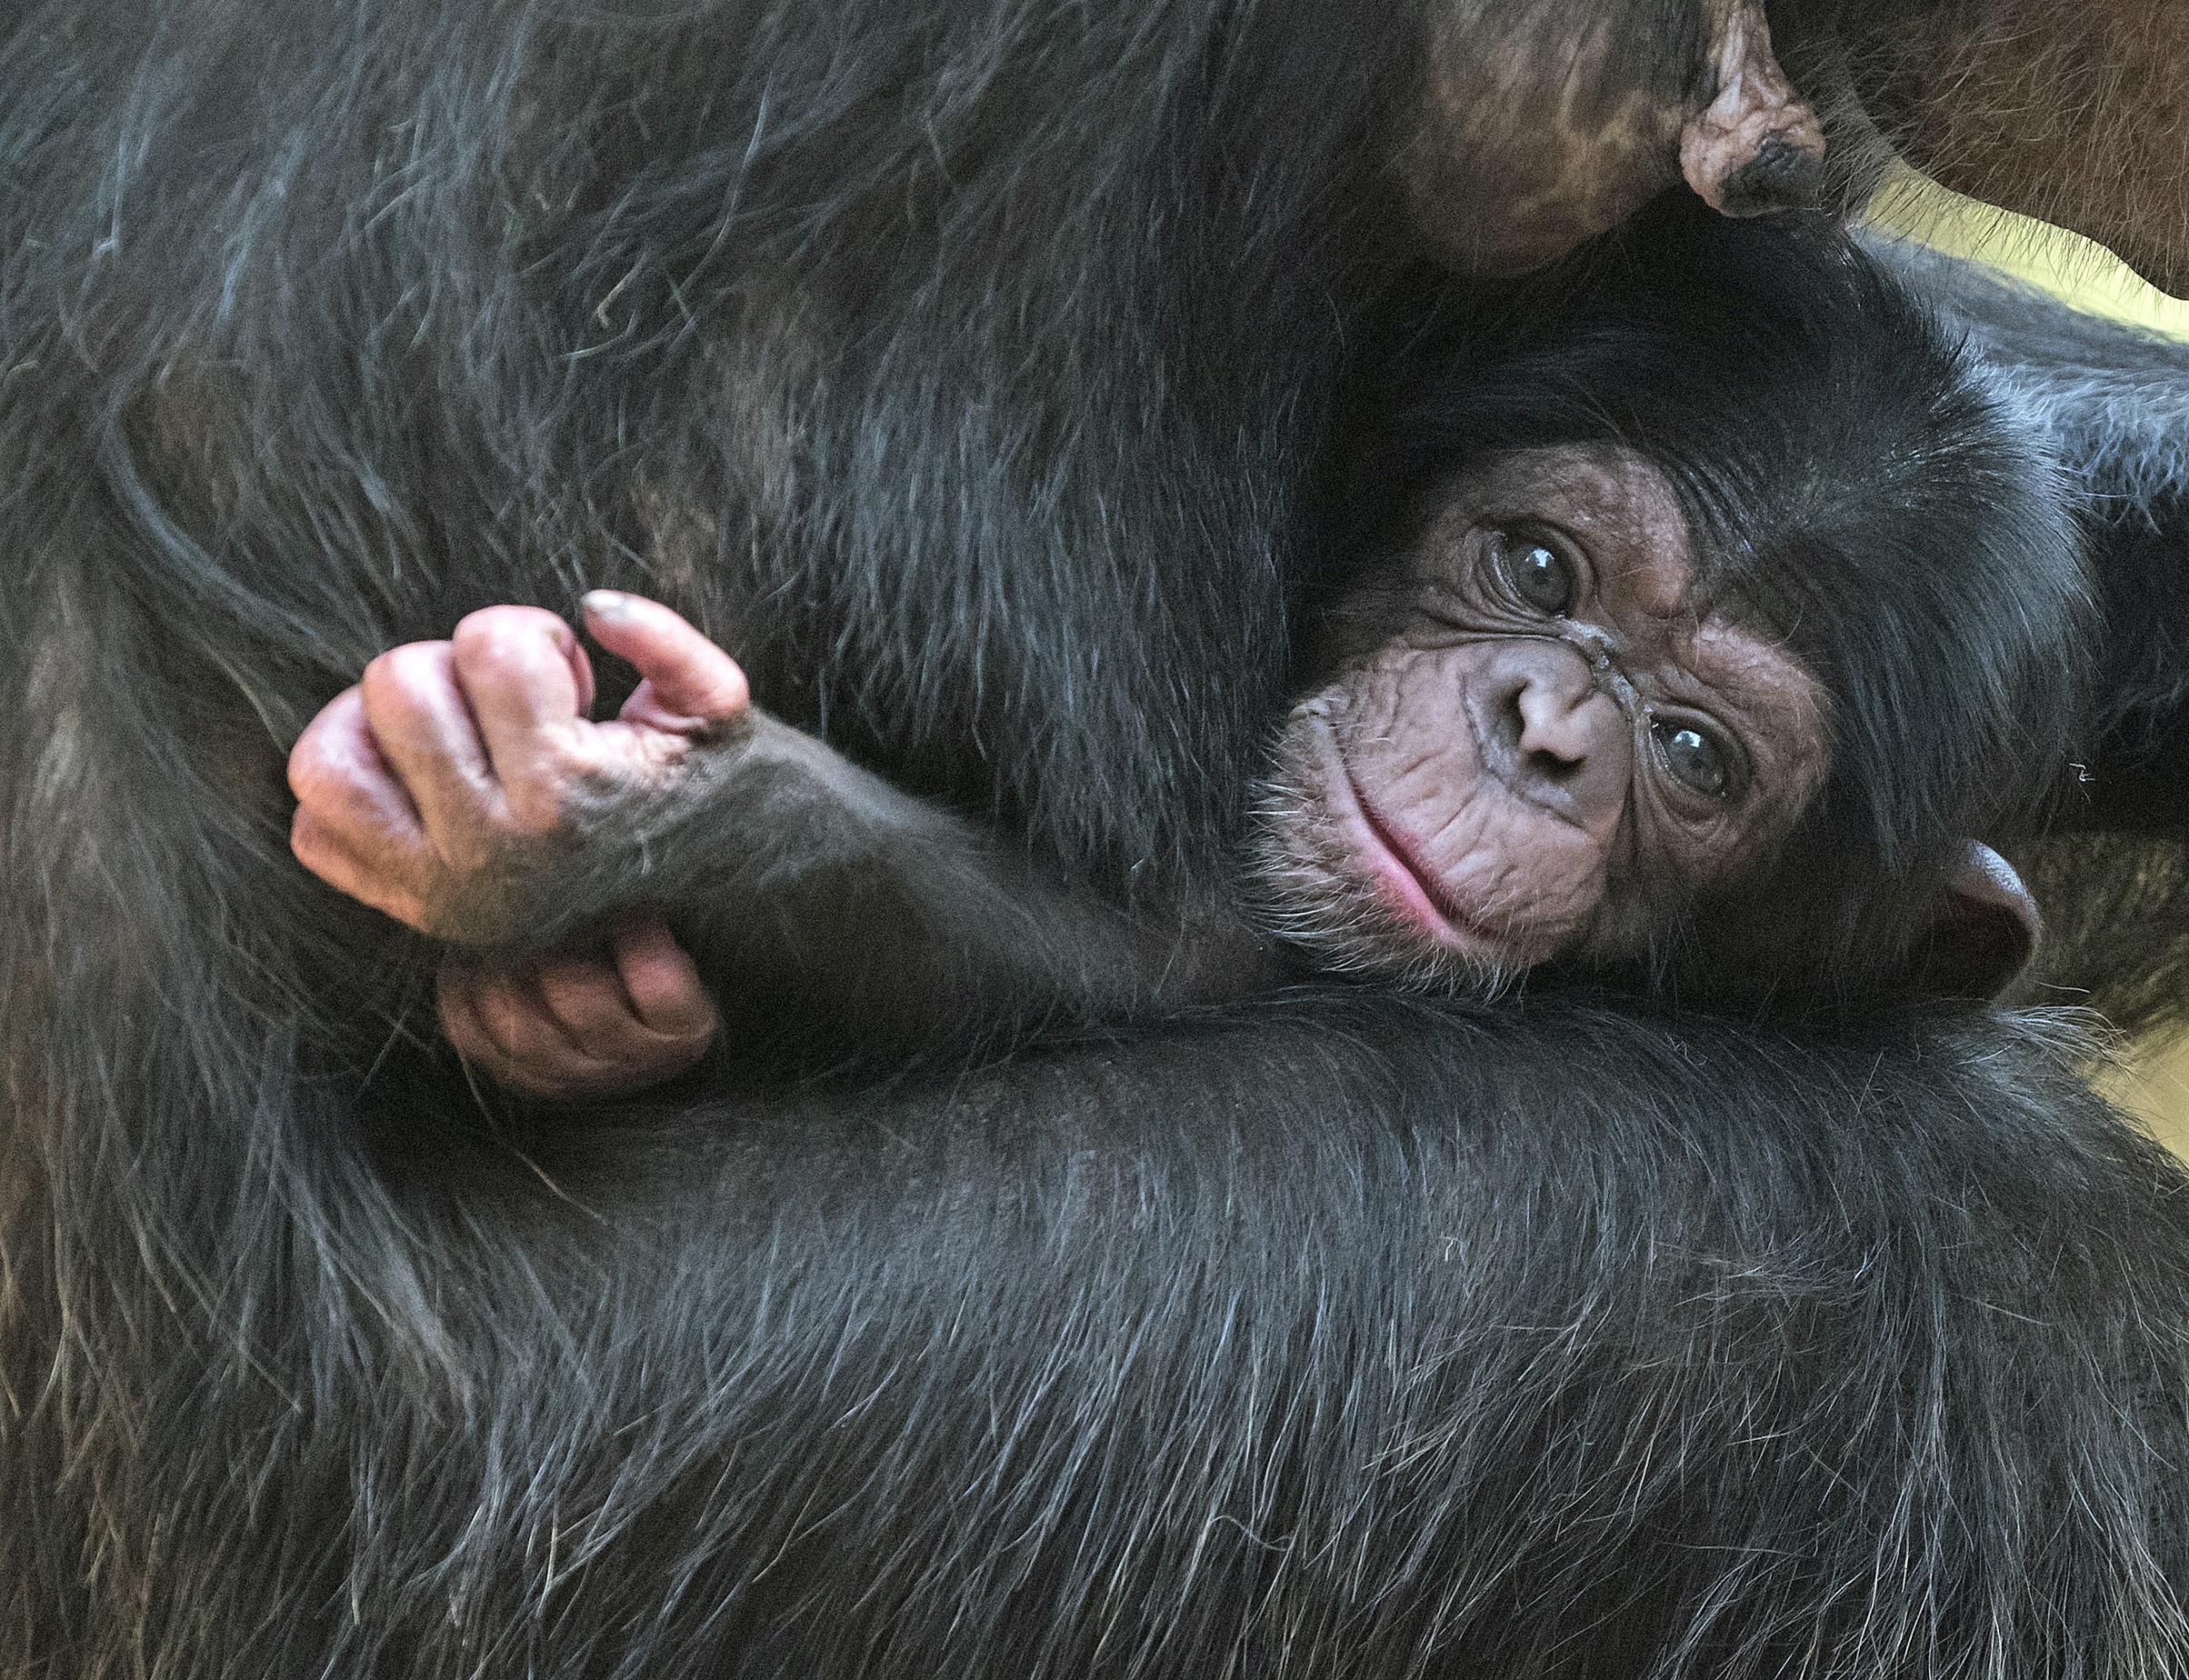 A baby chimpanzee relaxes on its mother Swela at the Leipzig Zoo in Leipzig, central Germany, April 23, 2015.